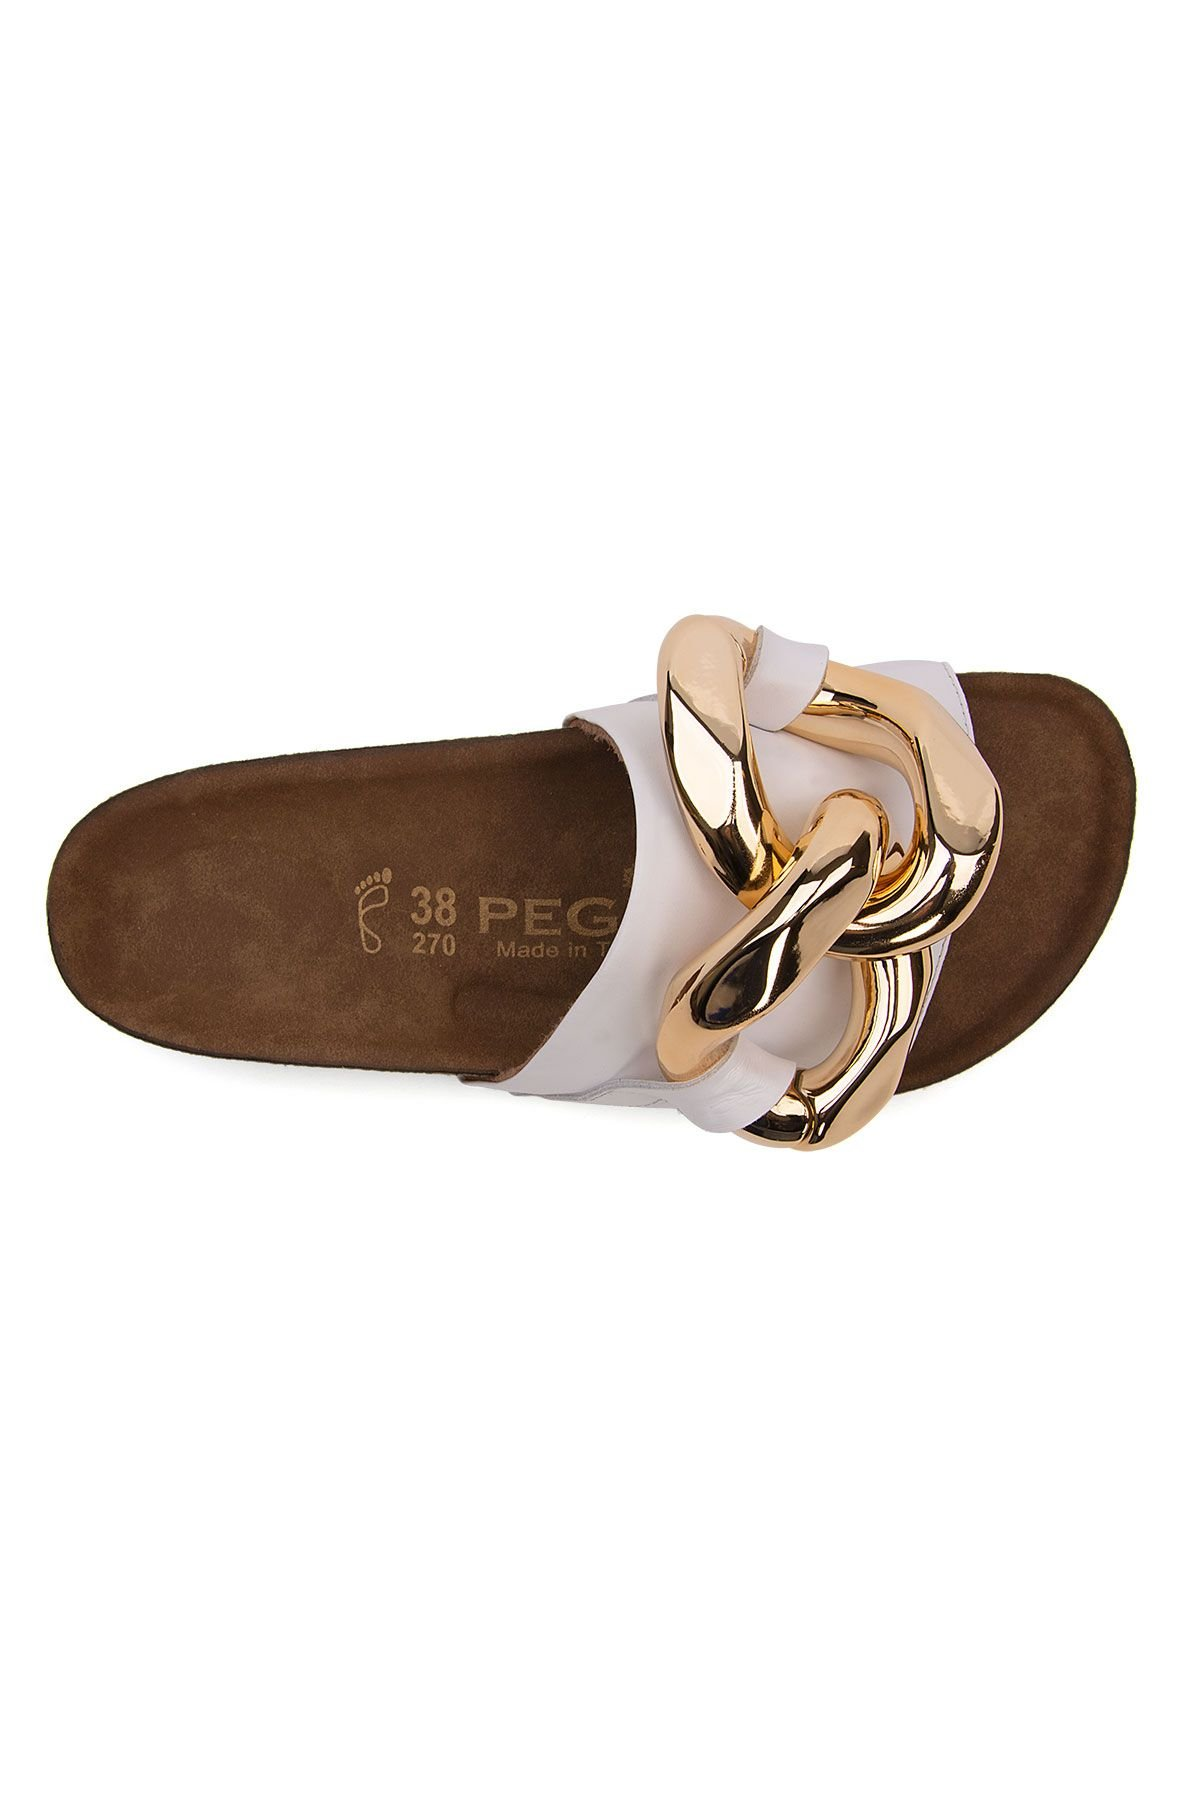 Pegia Women's Chain Detailed Leather Slippers 215536 White